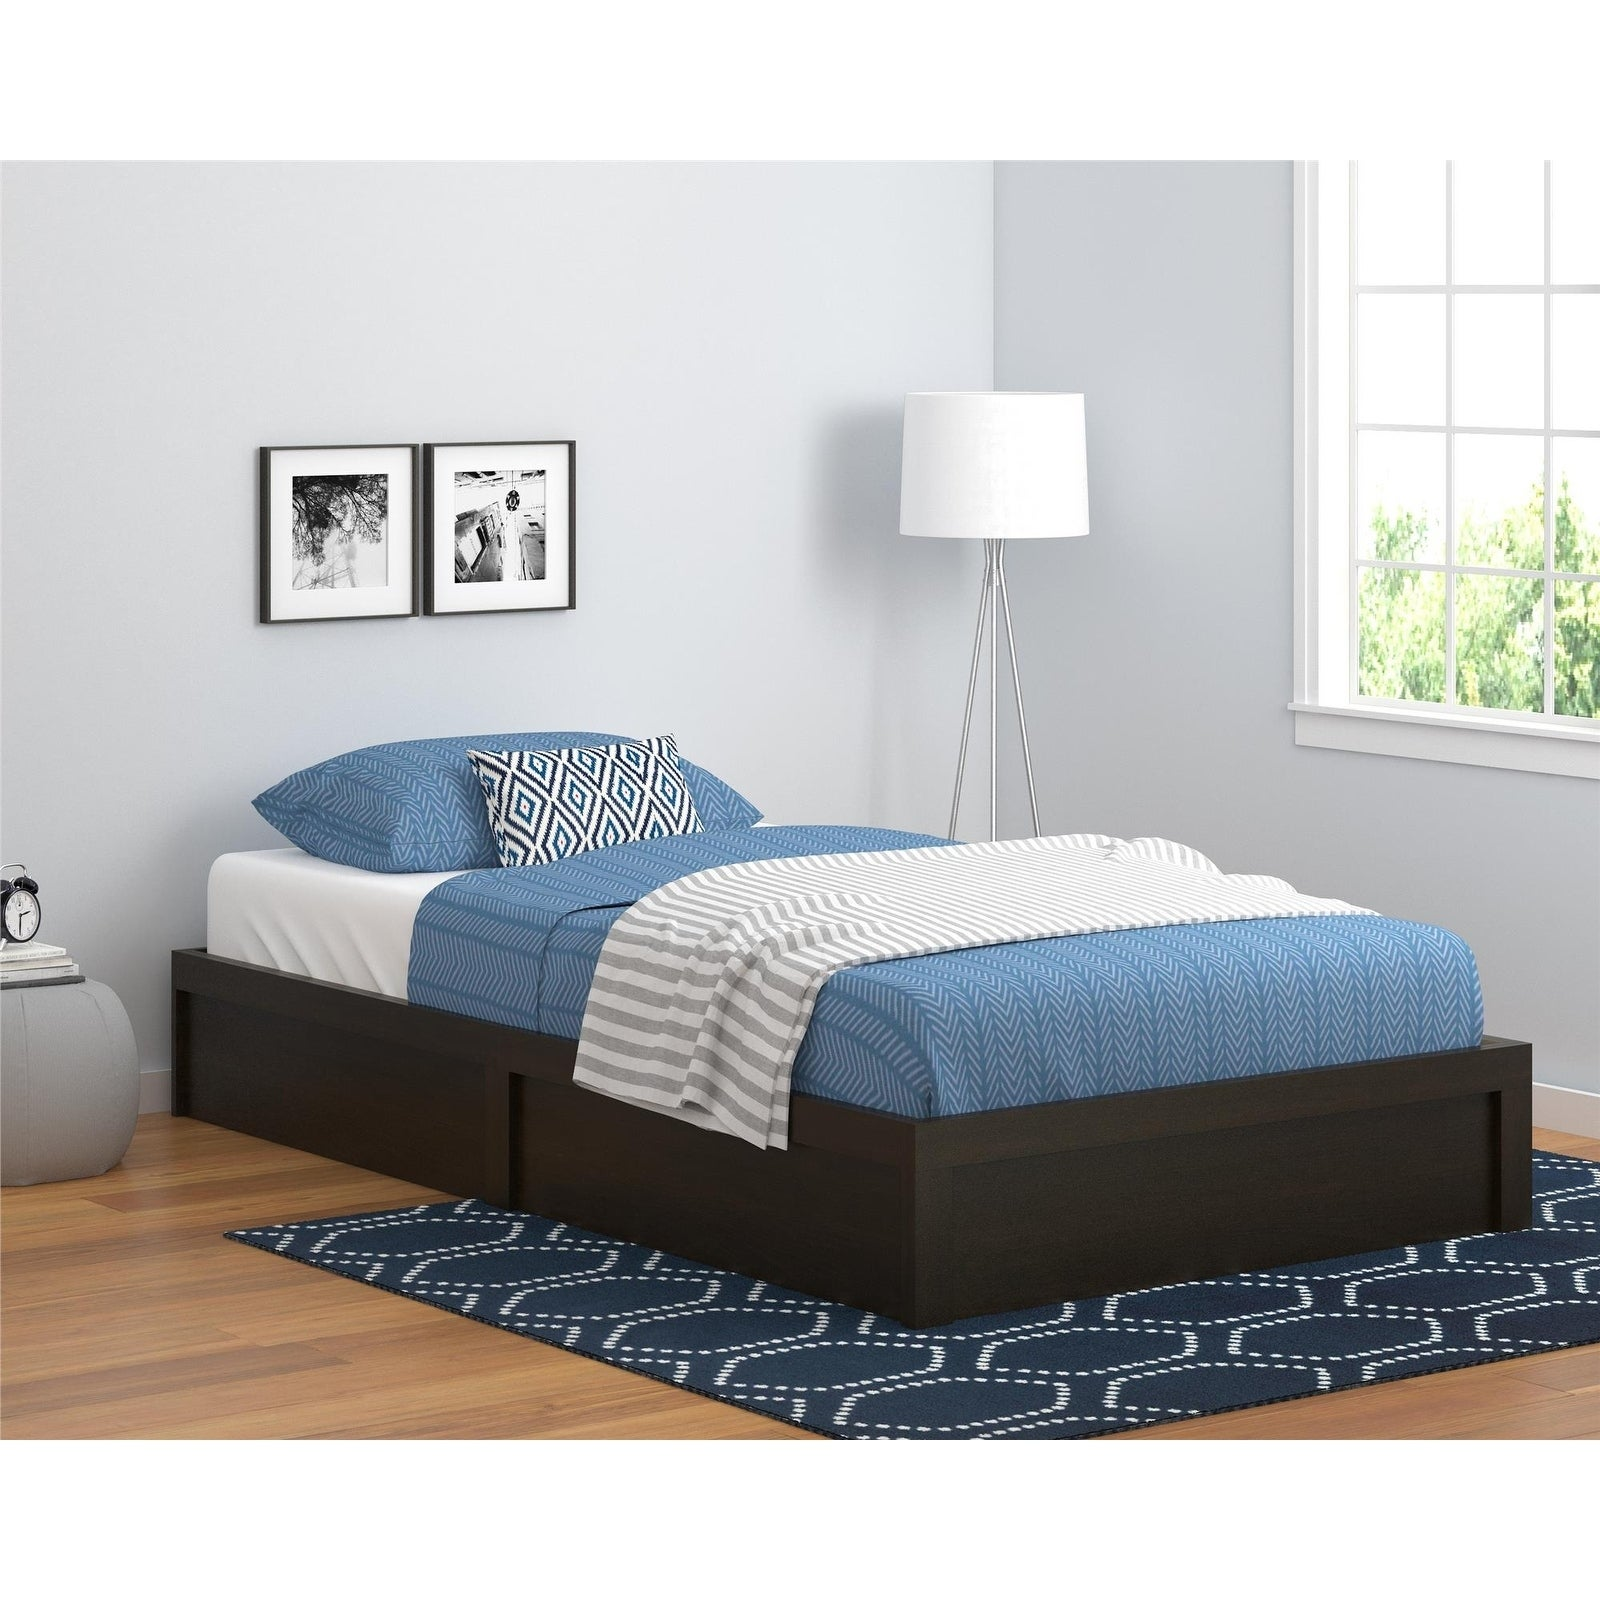 Havenside Home Amelia Platform Twin Bed Frame